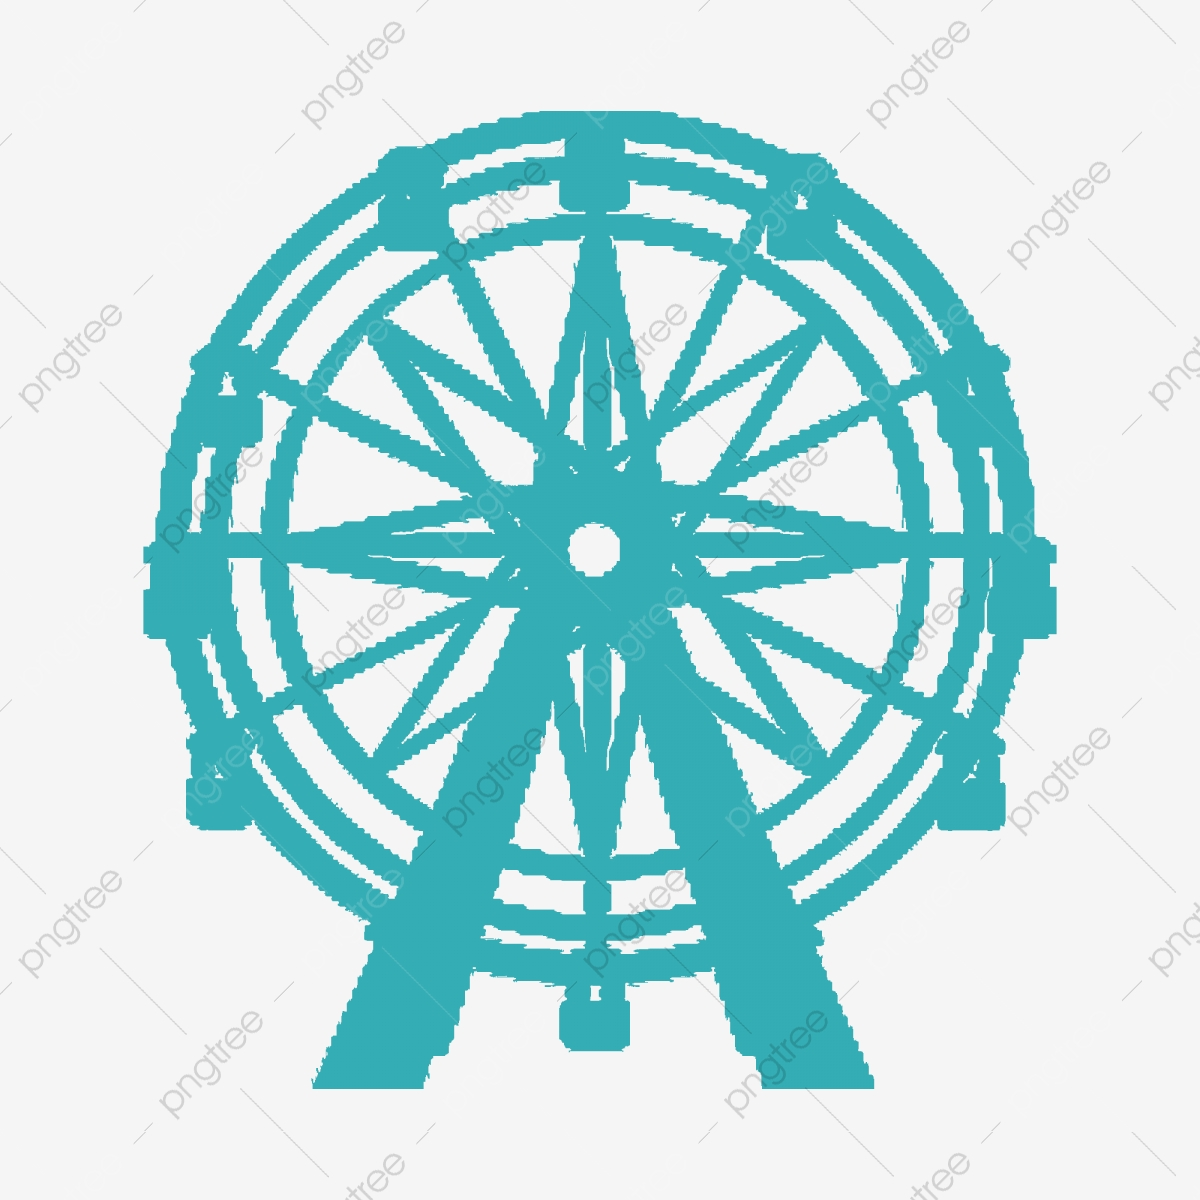 Ferris Wheel Silhouette Background Vector Material Silhouette Ferris Wheel City Png Transparent Clipart Image And Psd File For Free Download